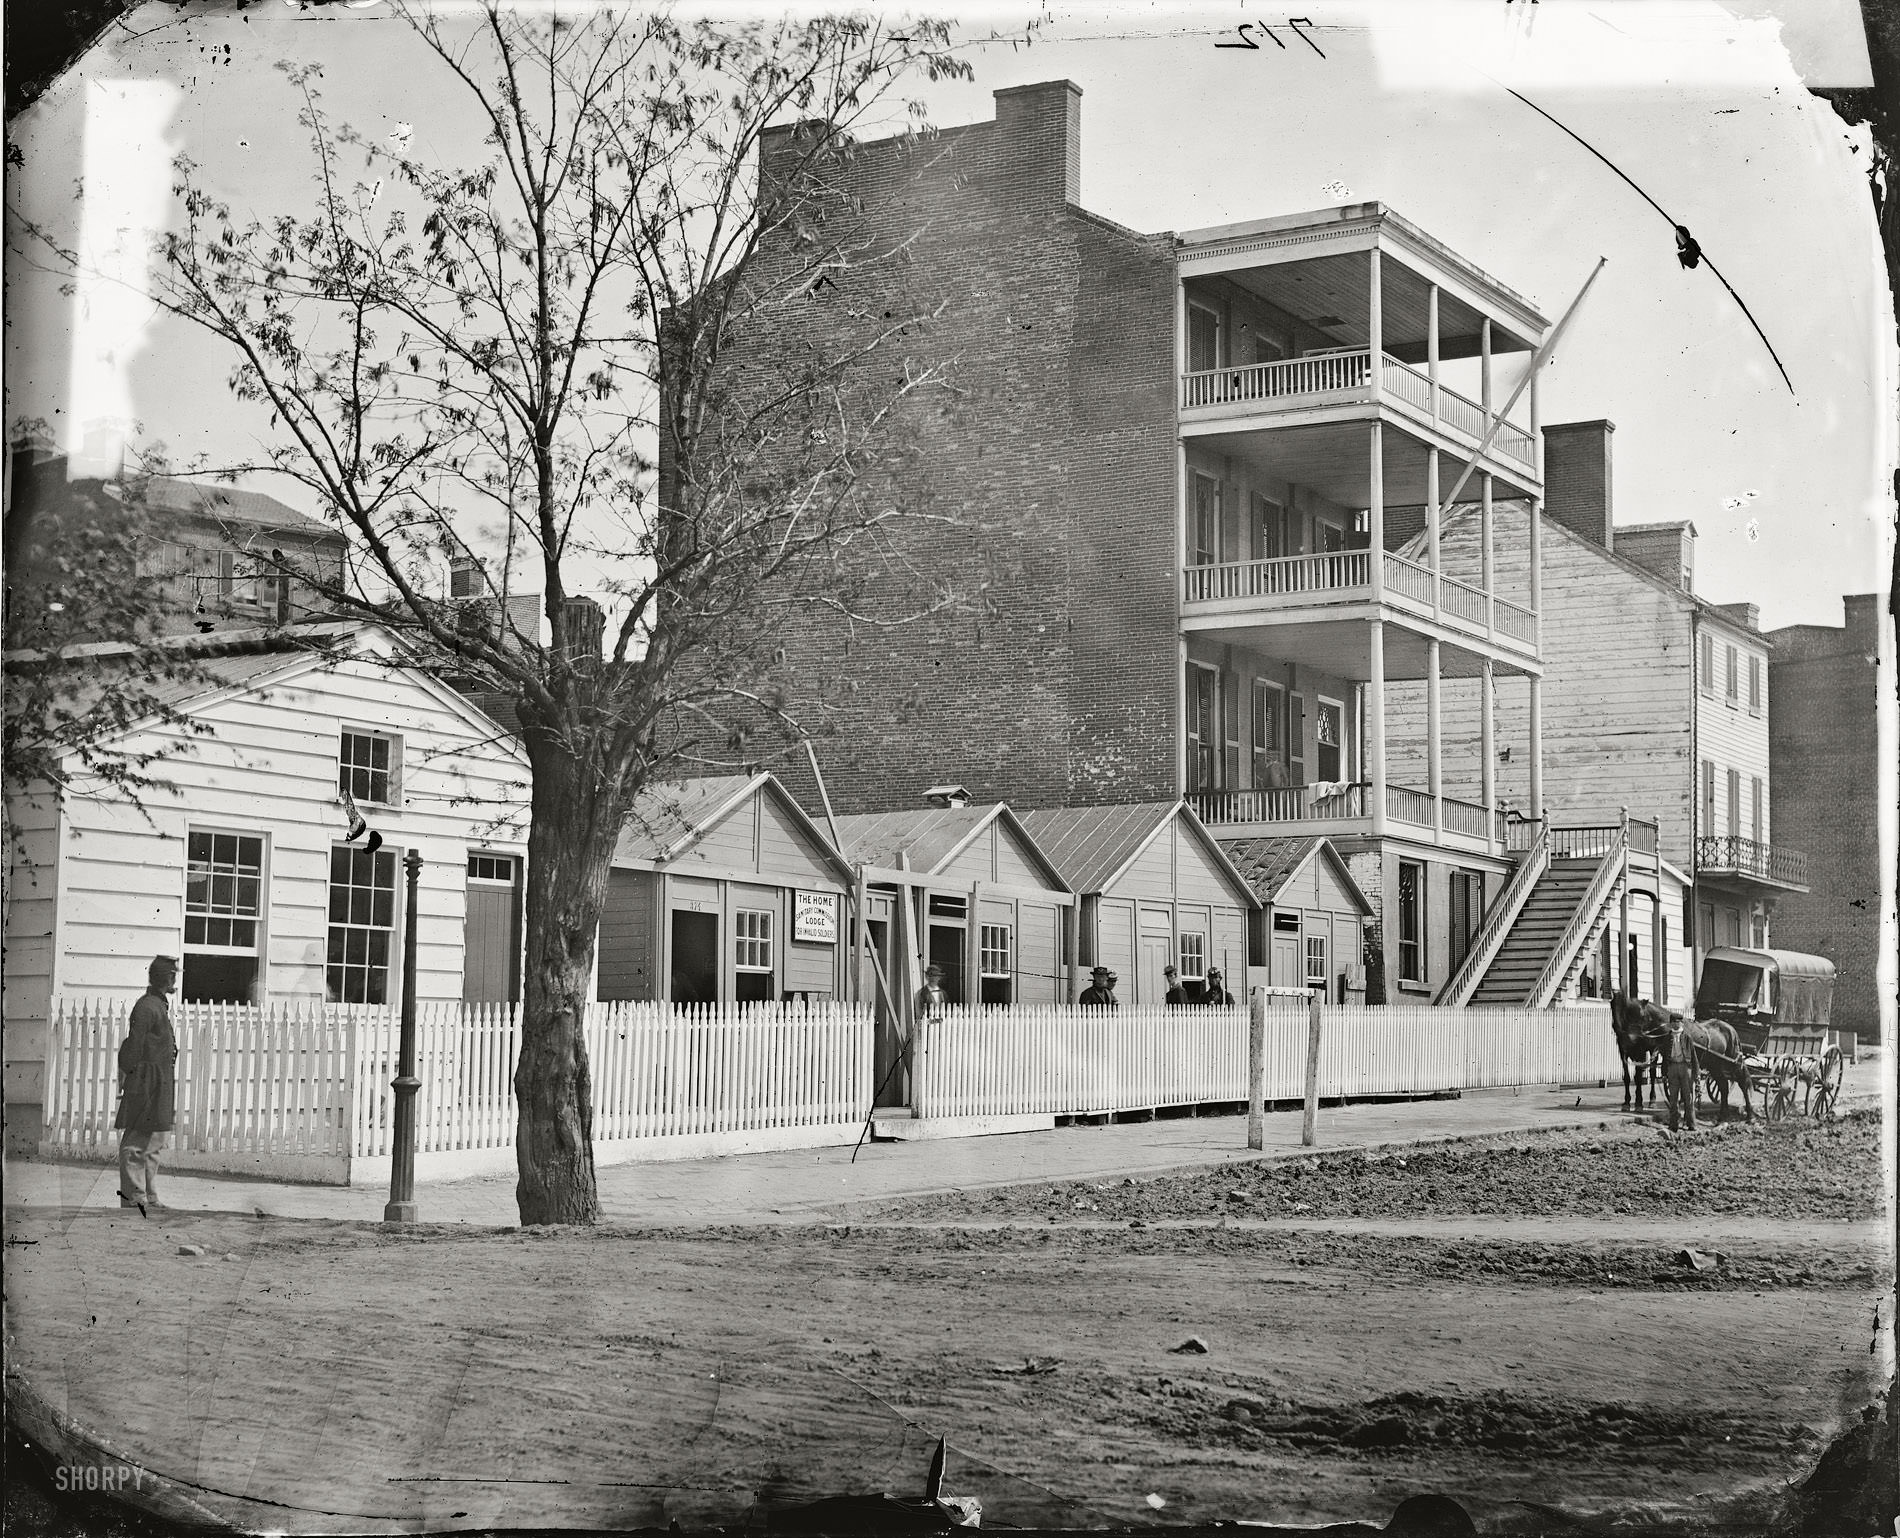 Buildings of the Sanitary Commission Home Lodge for Invalid Soldiers, North Capitol Street near C Street, Washington, D.C., 1865.